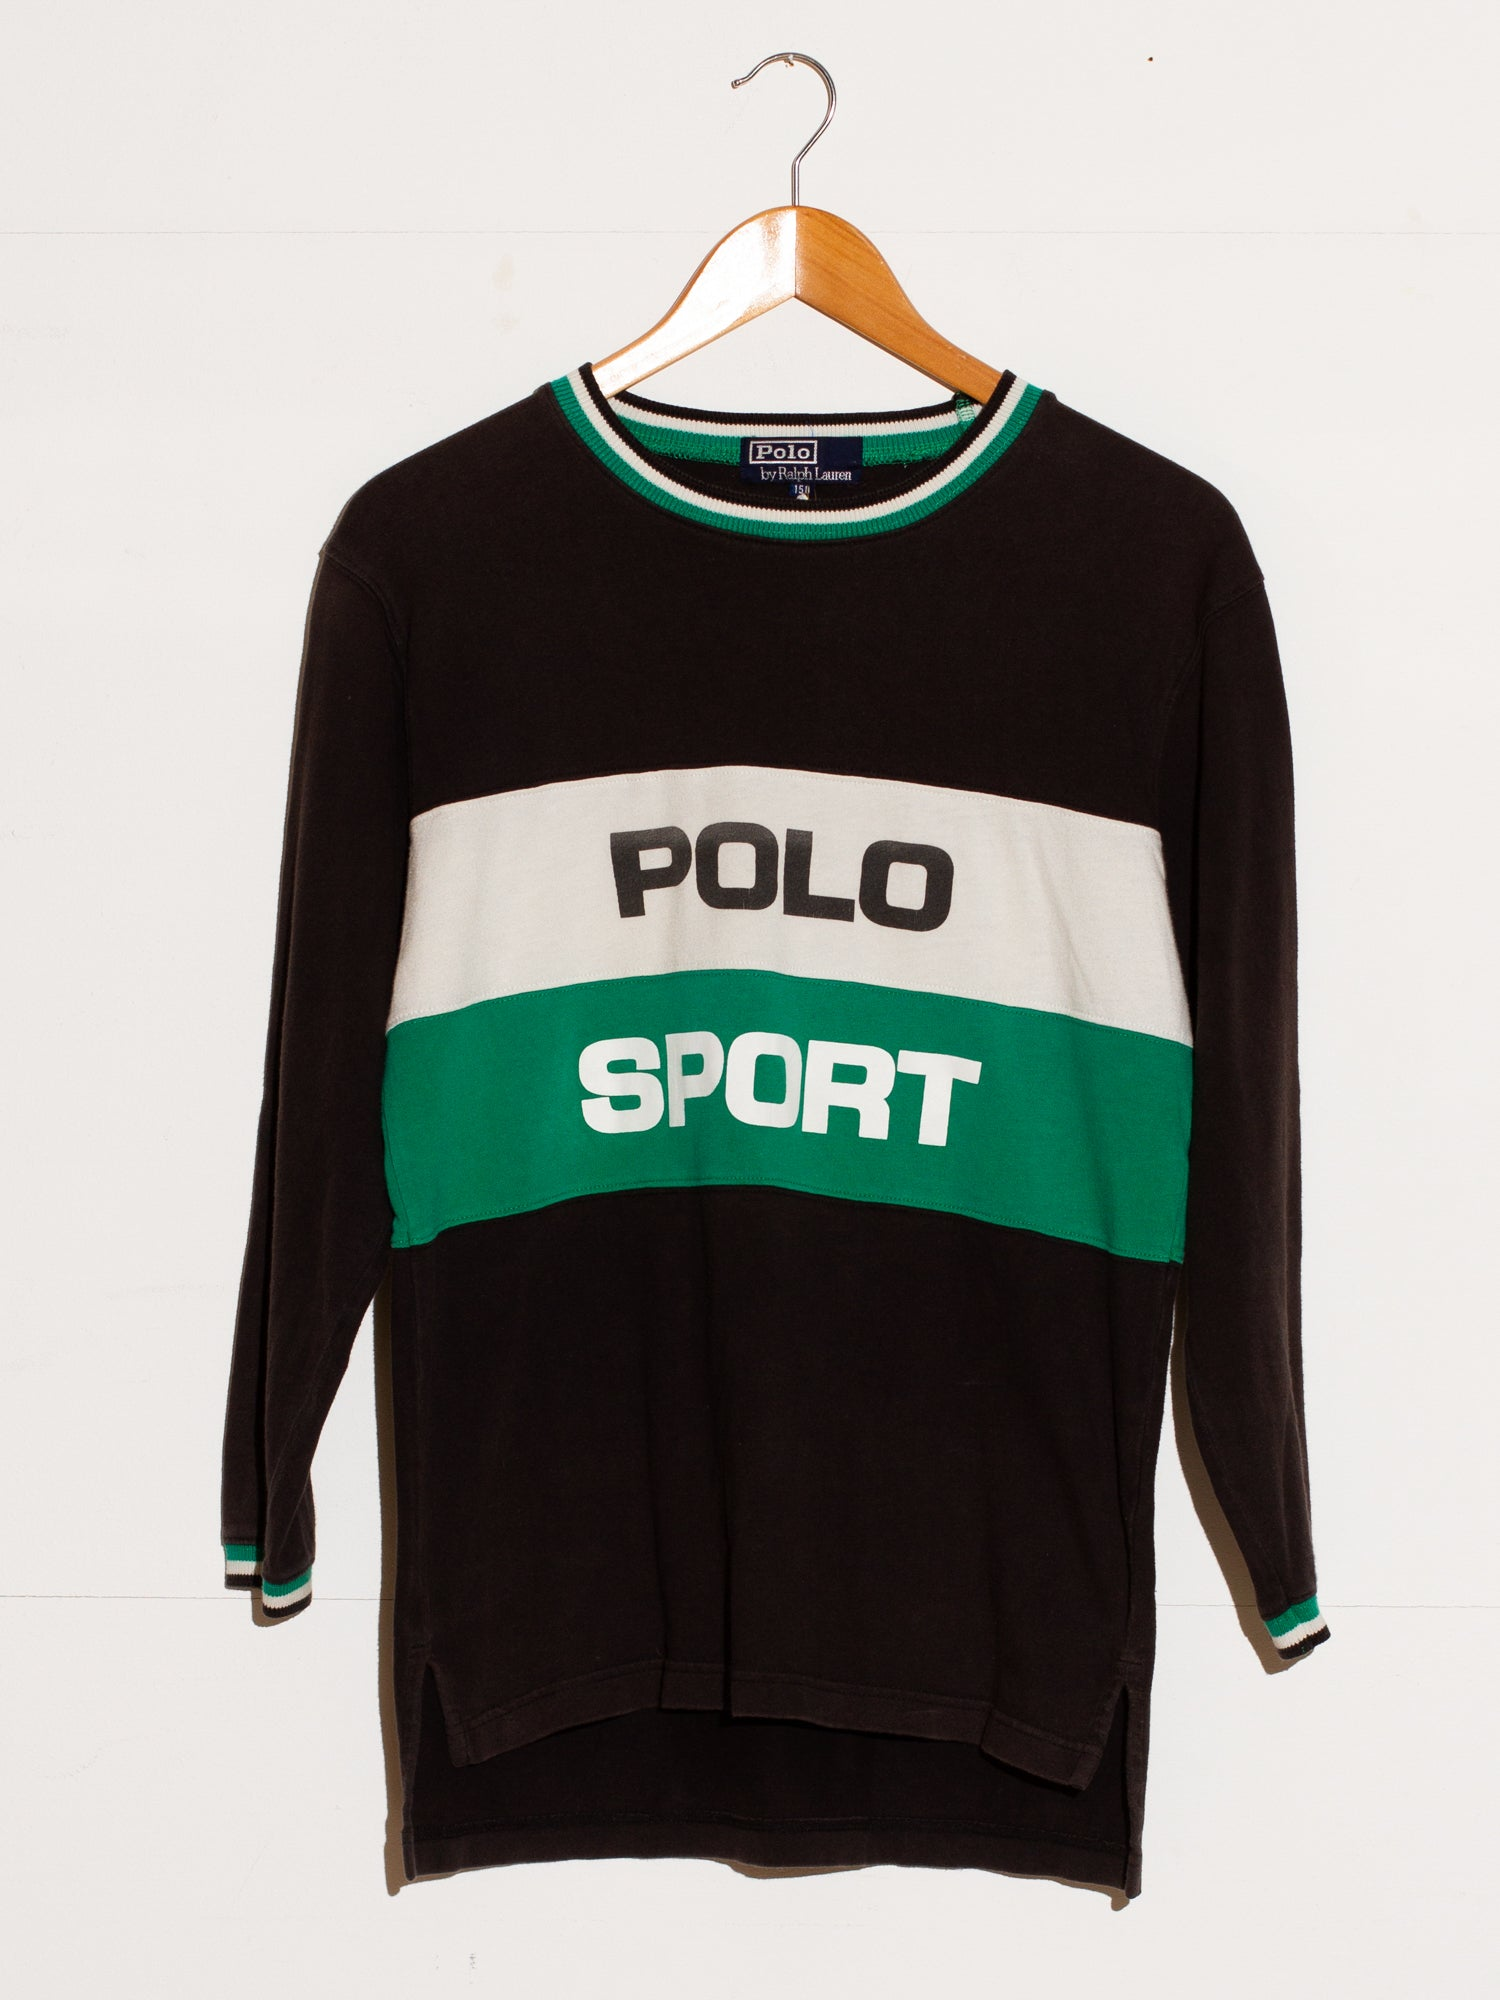 POLO SPORT BIG LOGO SWEATER